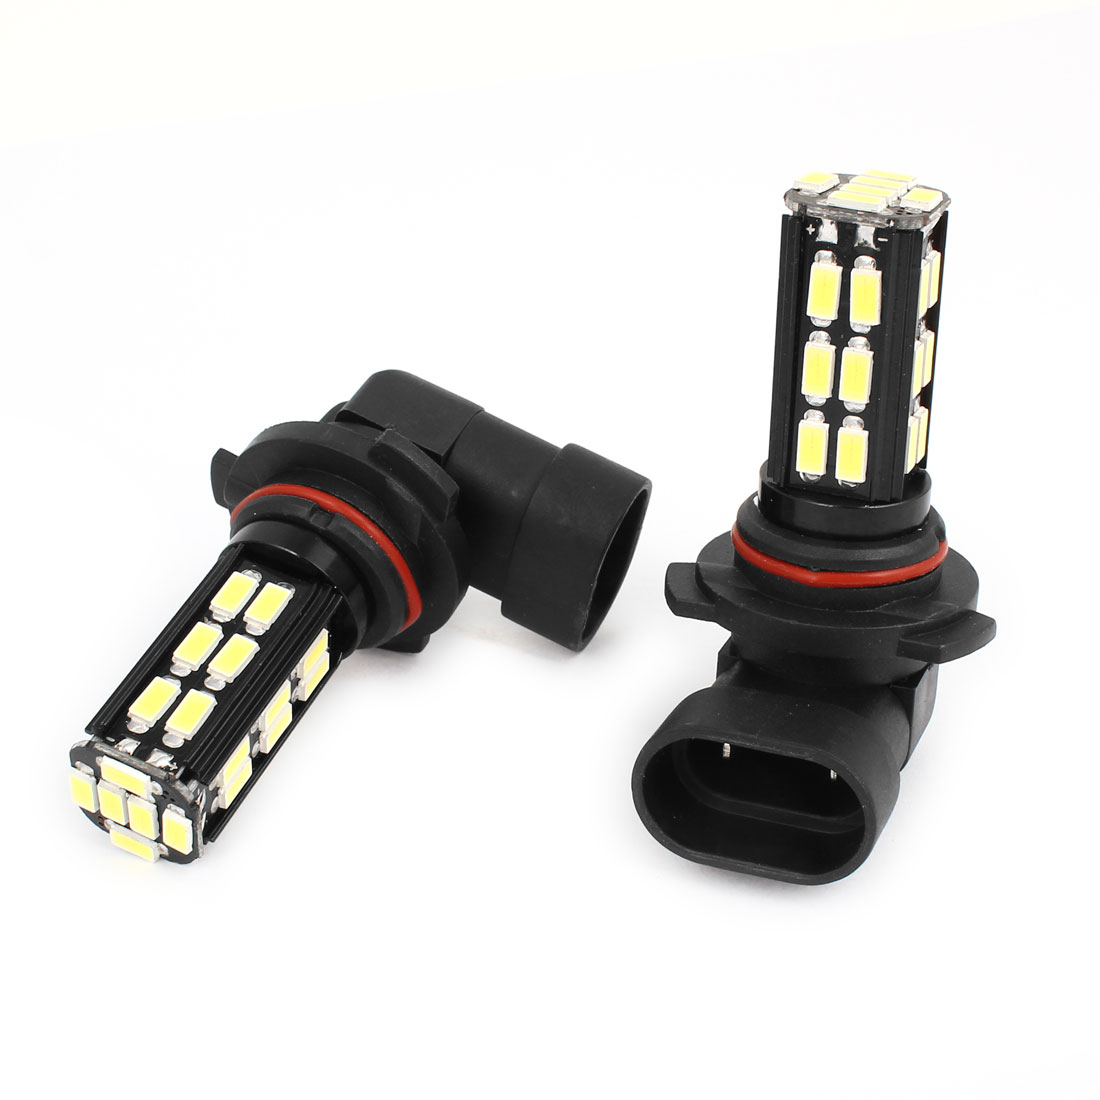 2 Pcs 9006 5630 30 SMD LED DRL Headlamp Fog Light White 12-24V